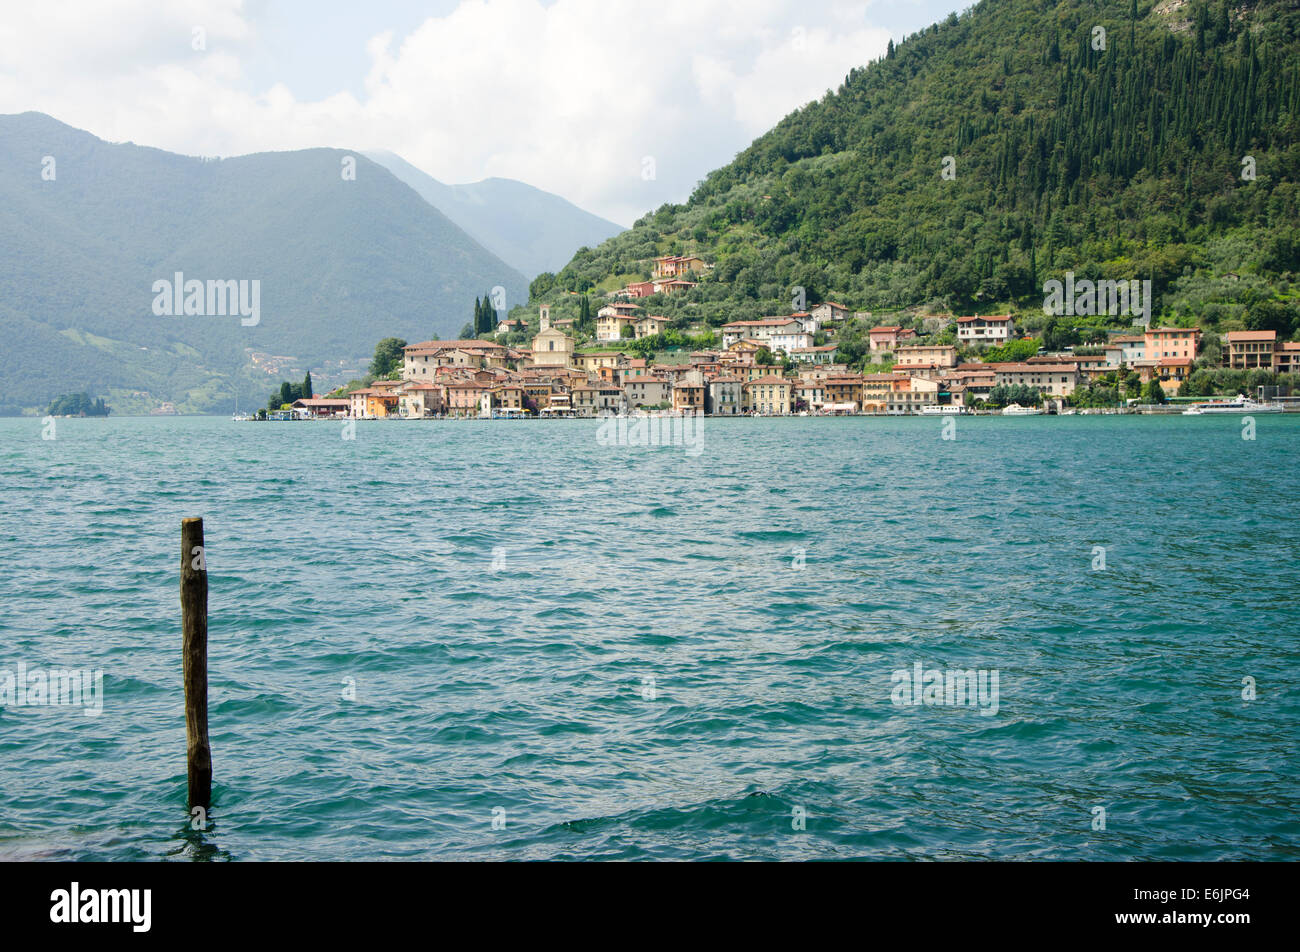 Lake Iseo or Lago d'Iseo or Sebino with the village Predore in the background. Lombardy region. Northern Italy. - Stock Image